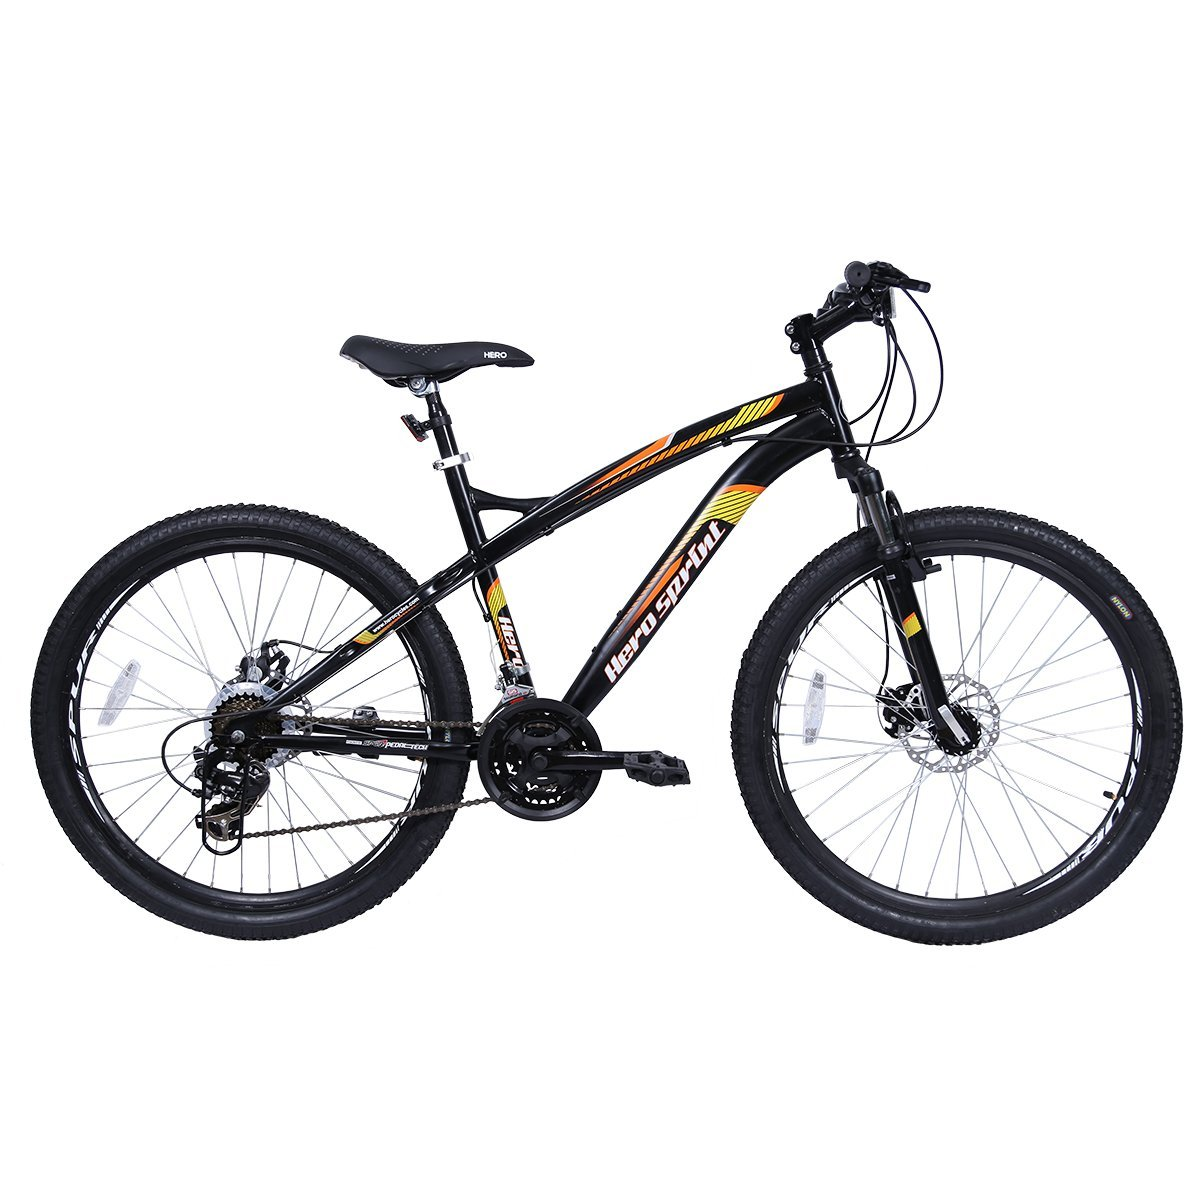 Hero Sprint Ultron 26T 21 Speed Mountain Cycle (Black) product image